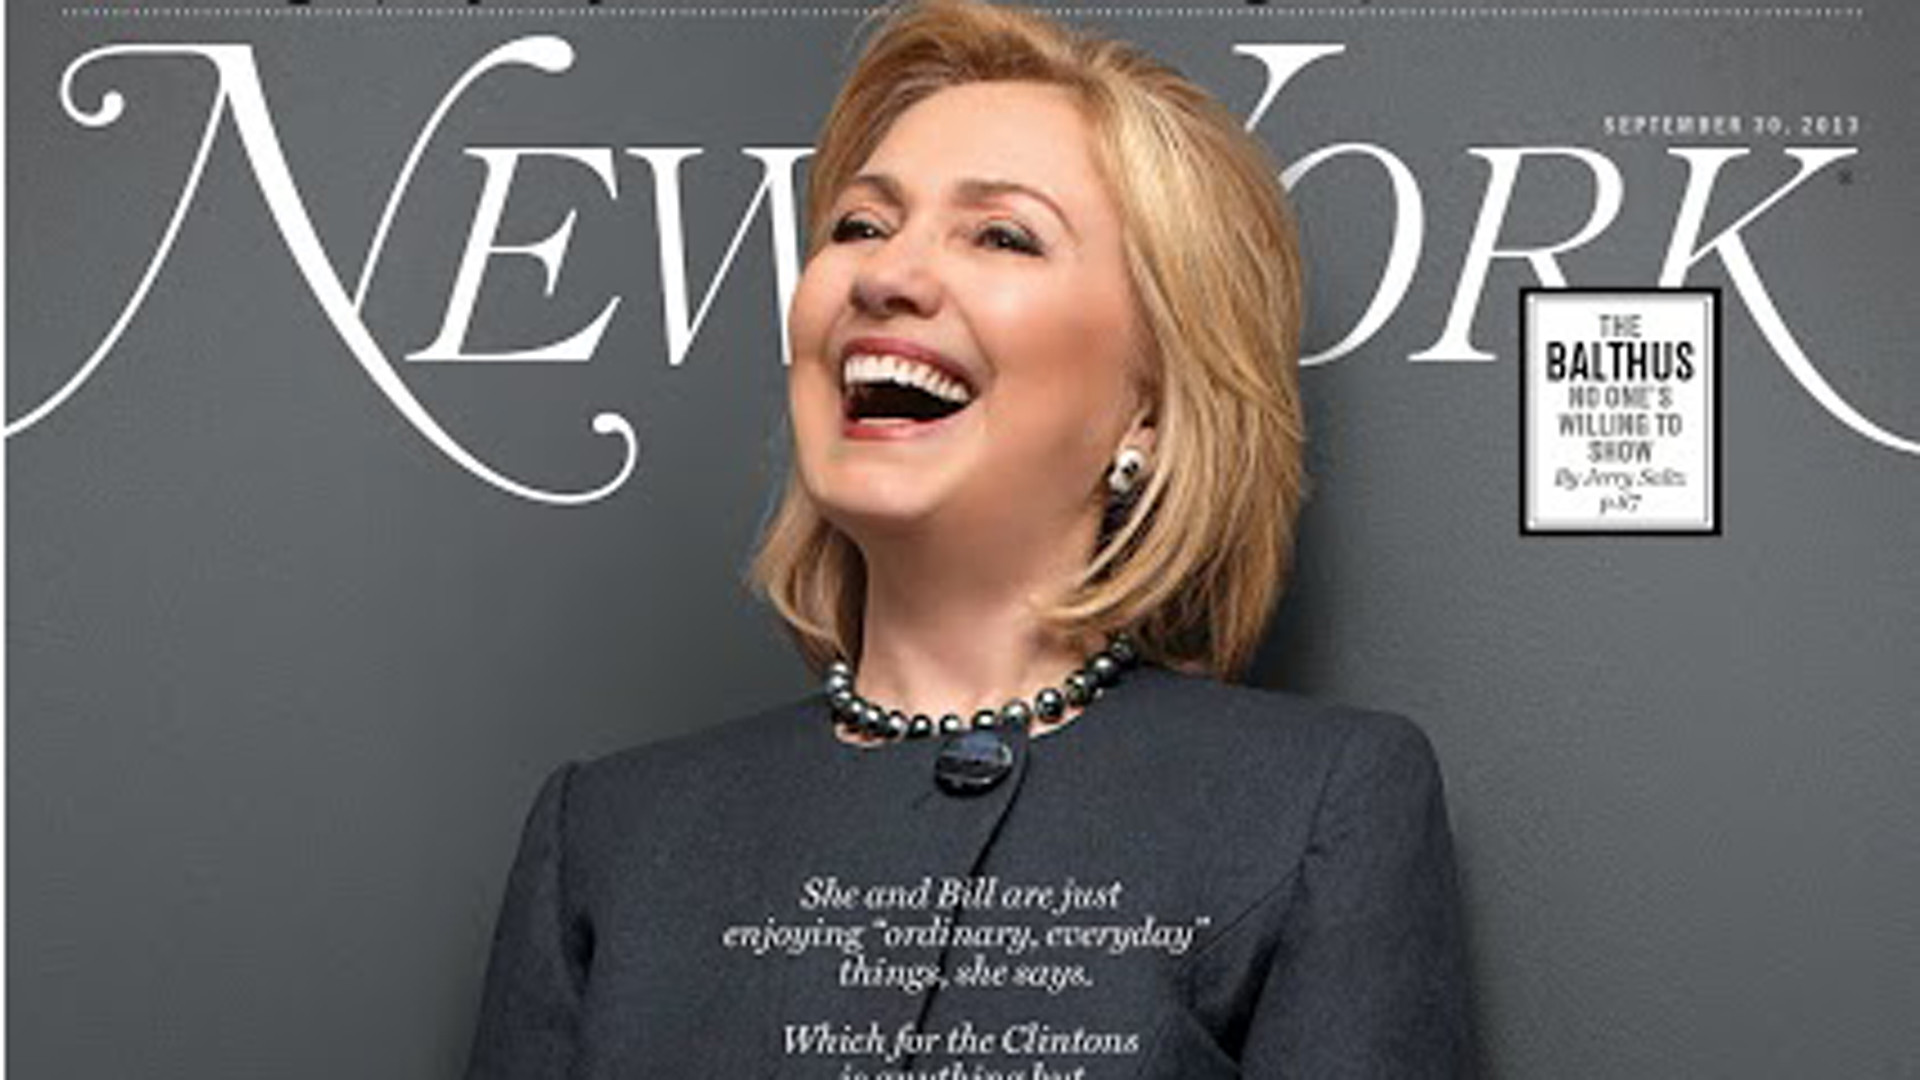 1920x1080 Hillary Clinton appears on the cover of New York magazine's latest .